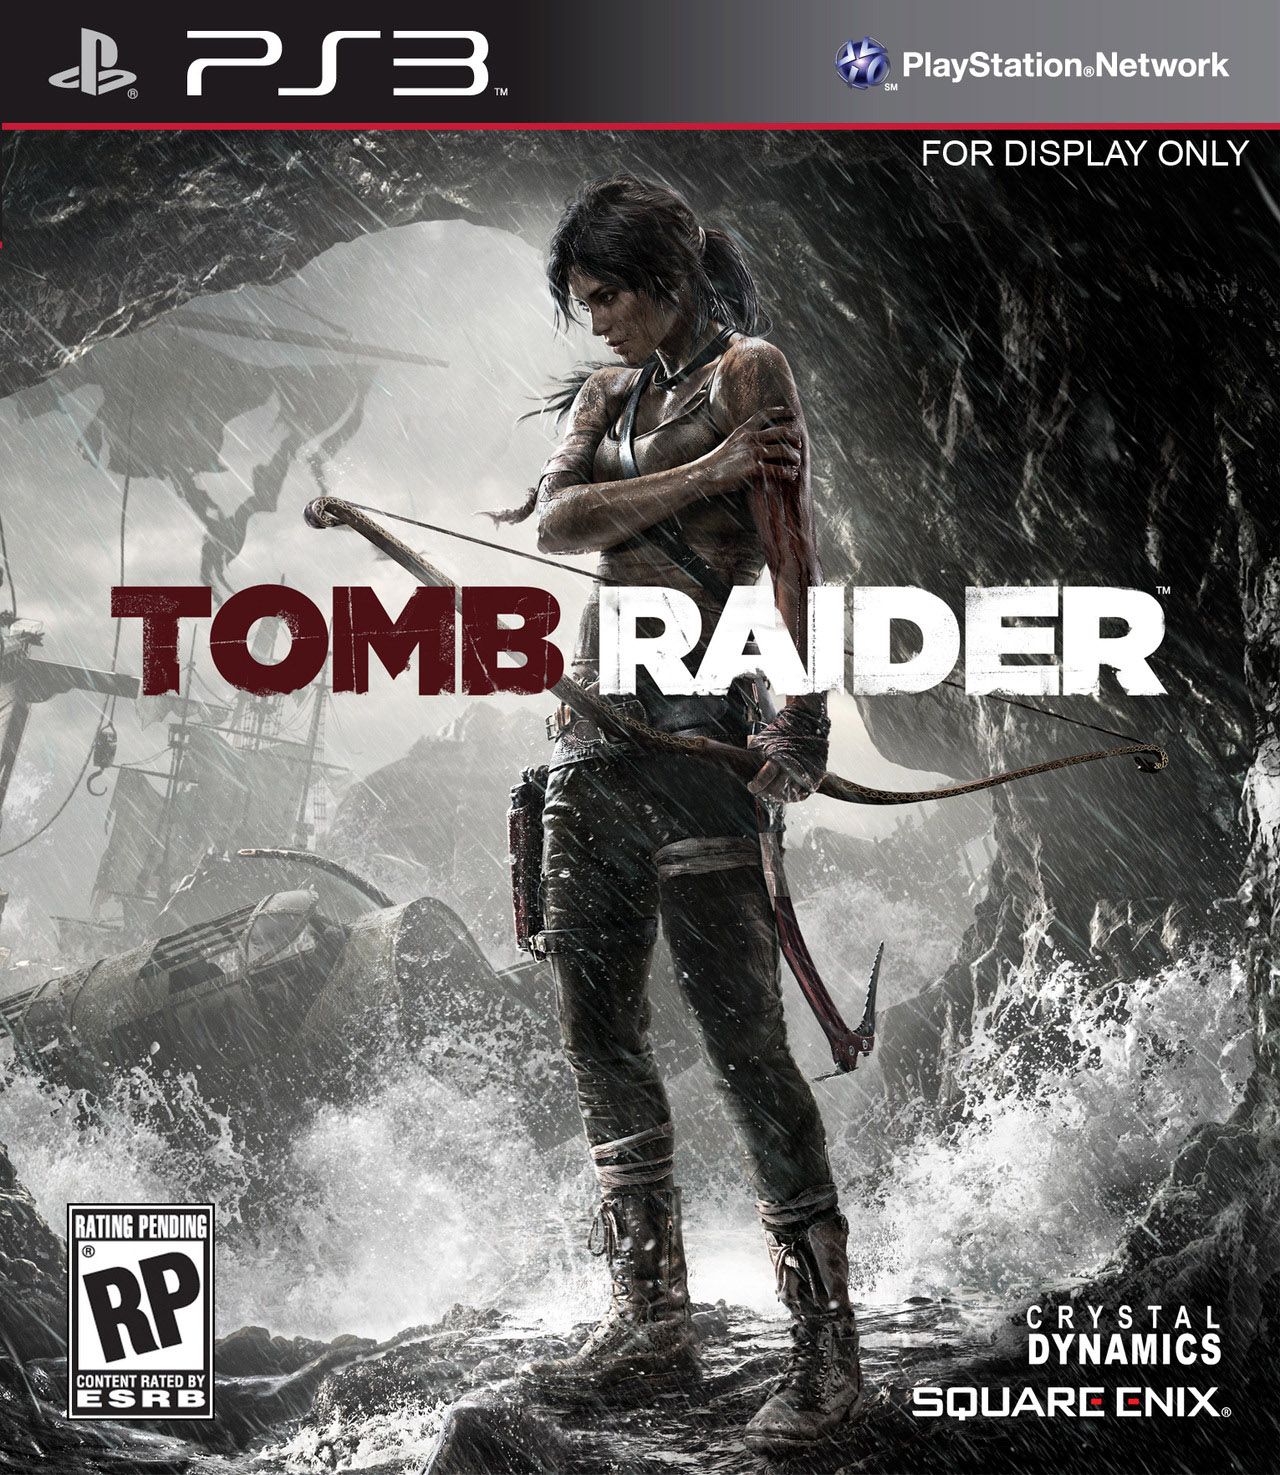 tomb raider 2013 info and walkthrough stella s site rh tombraiders net FF7 Walkthrough Guide Walkthrough Guide Ideas